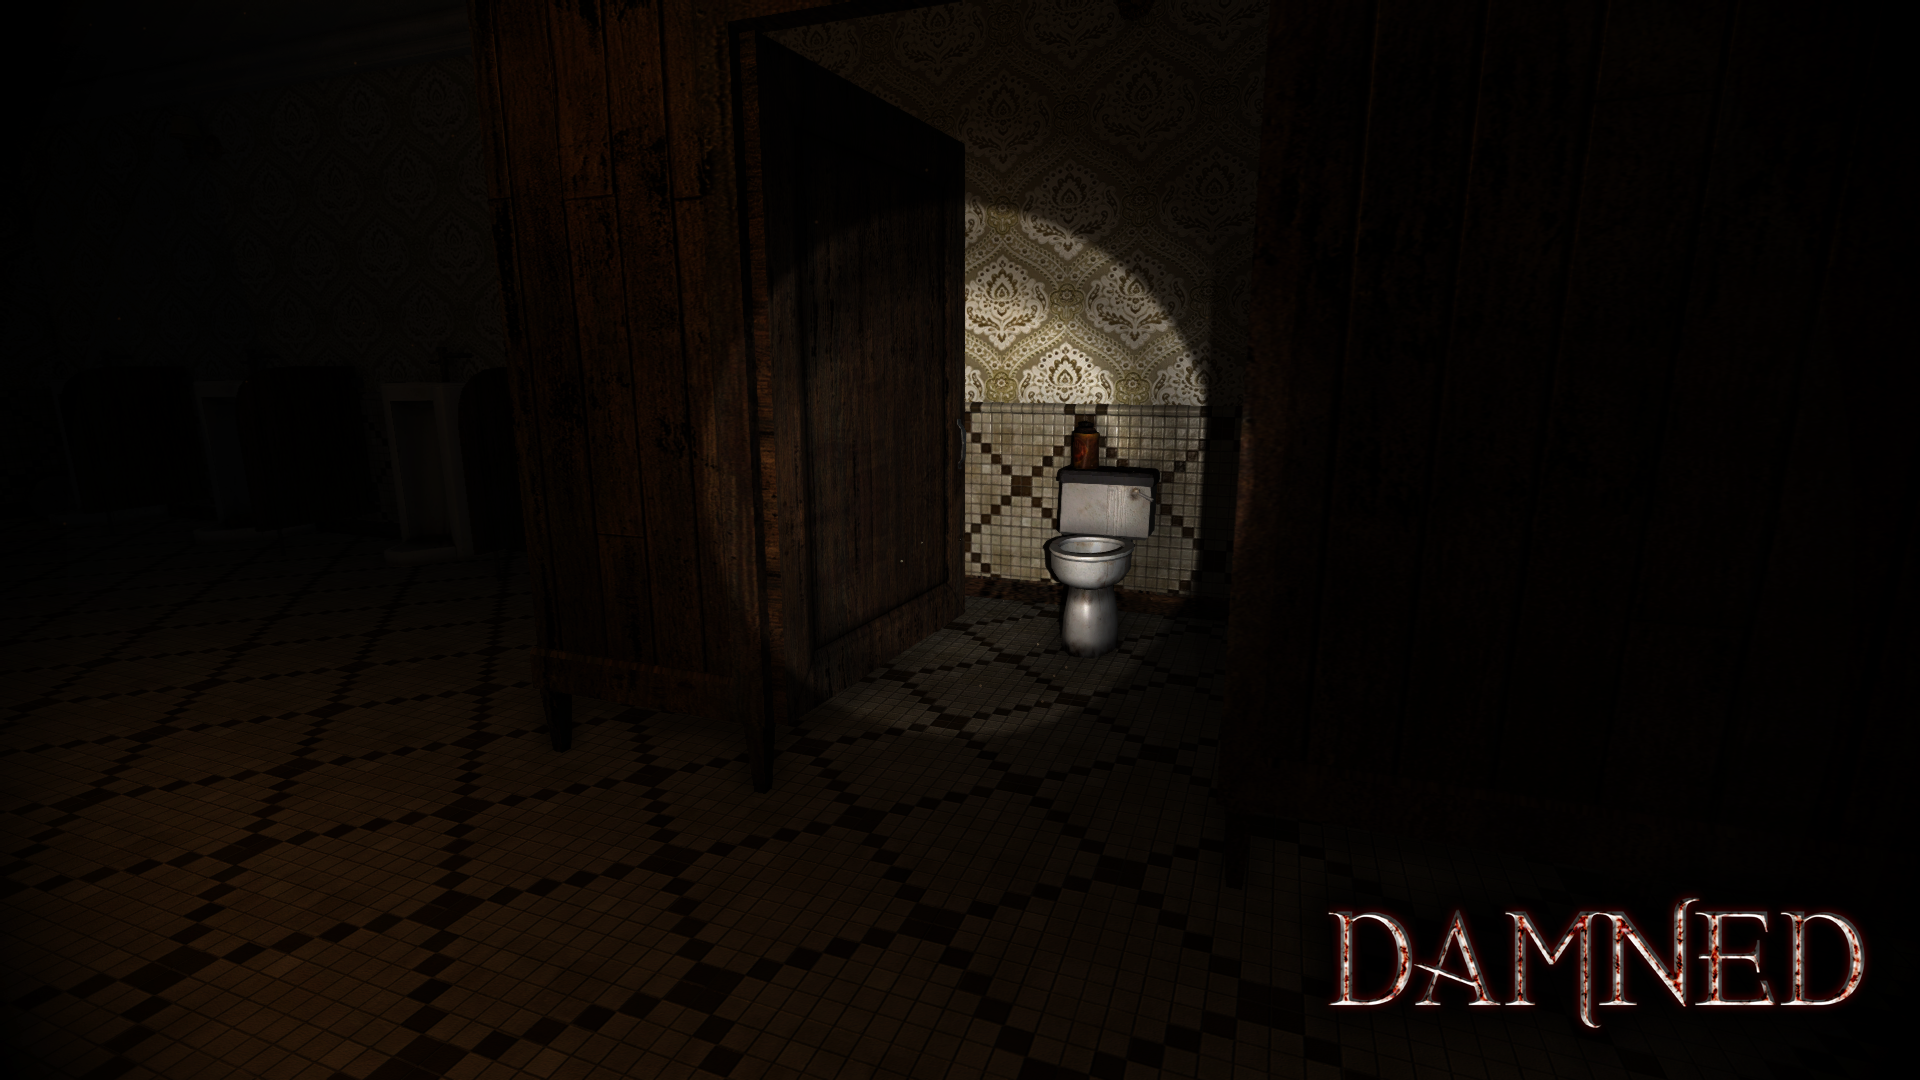 Damned Game Free Download - #GolfClub